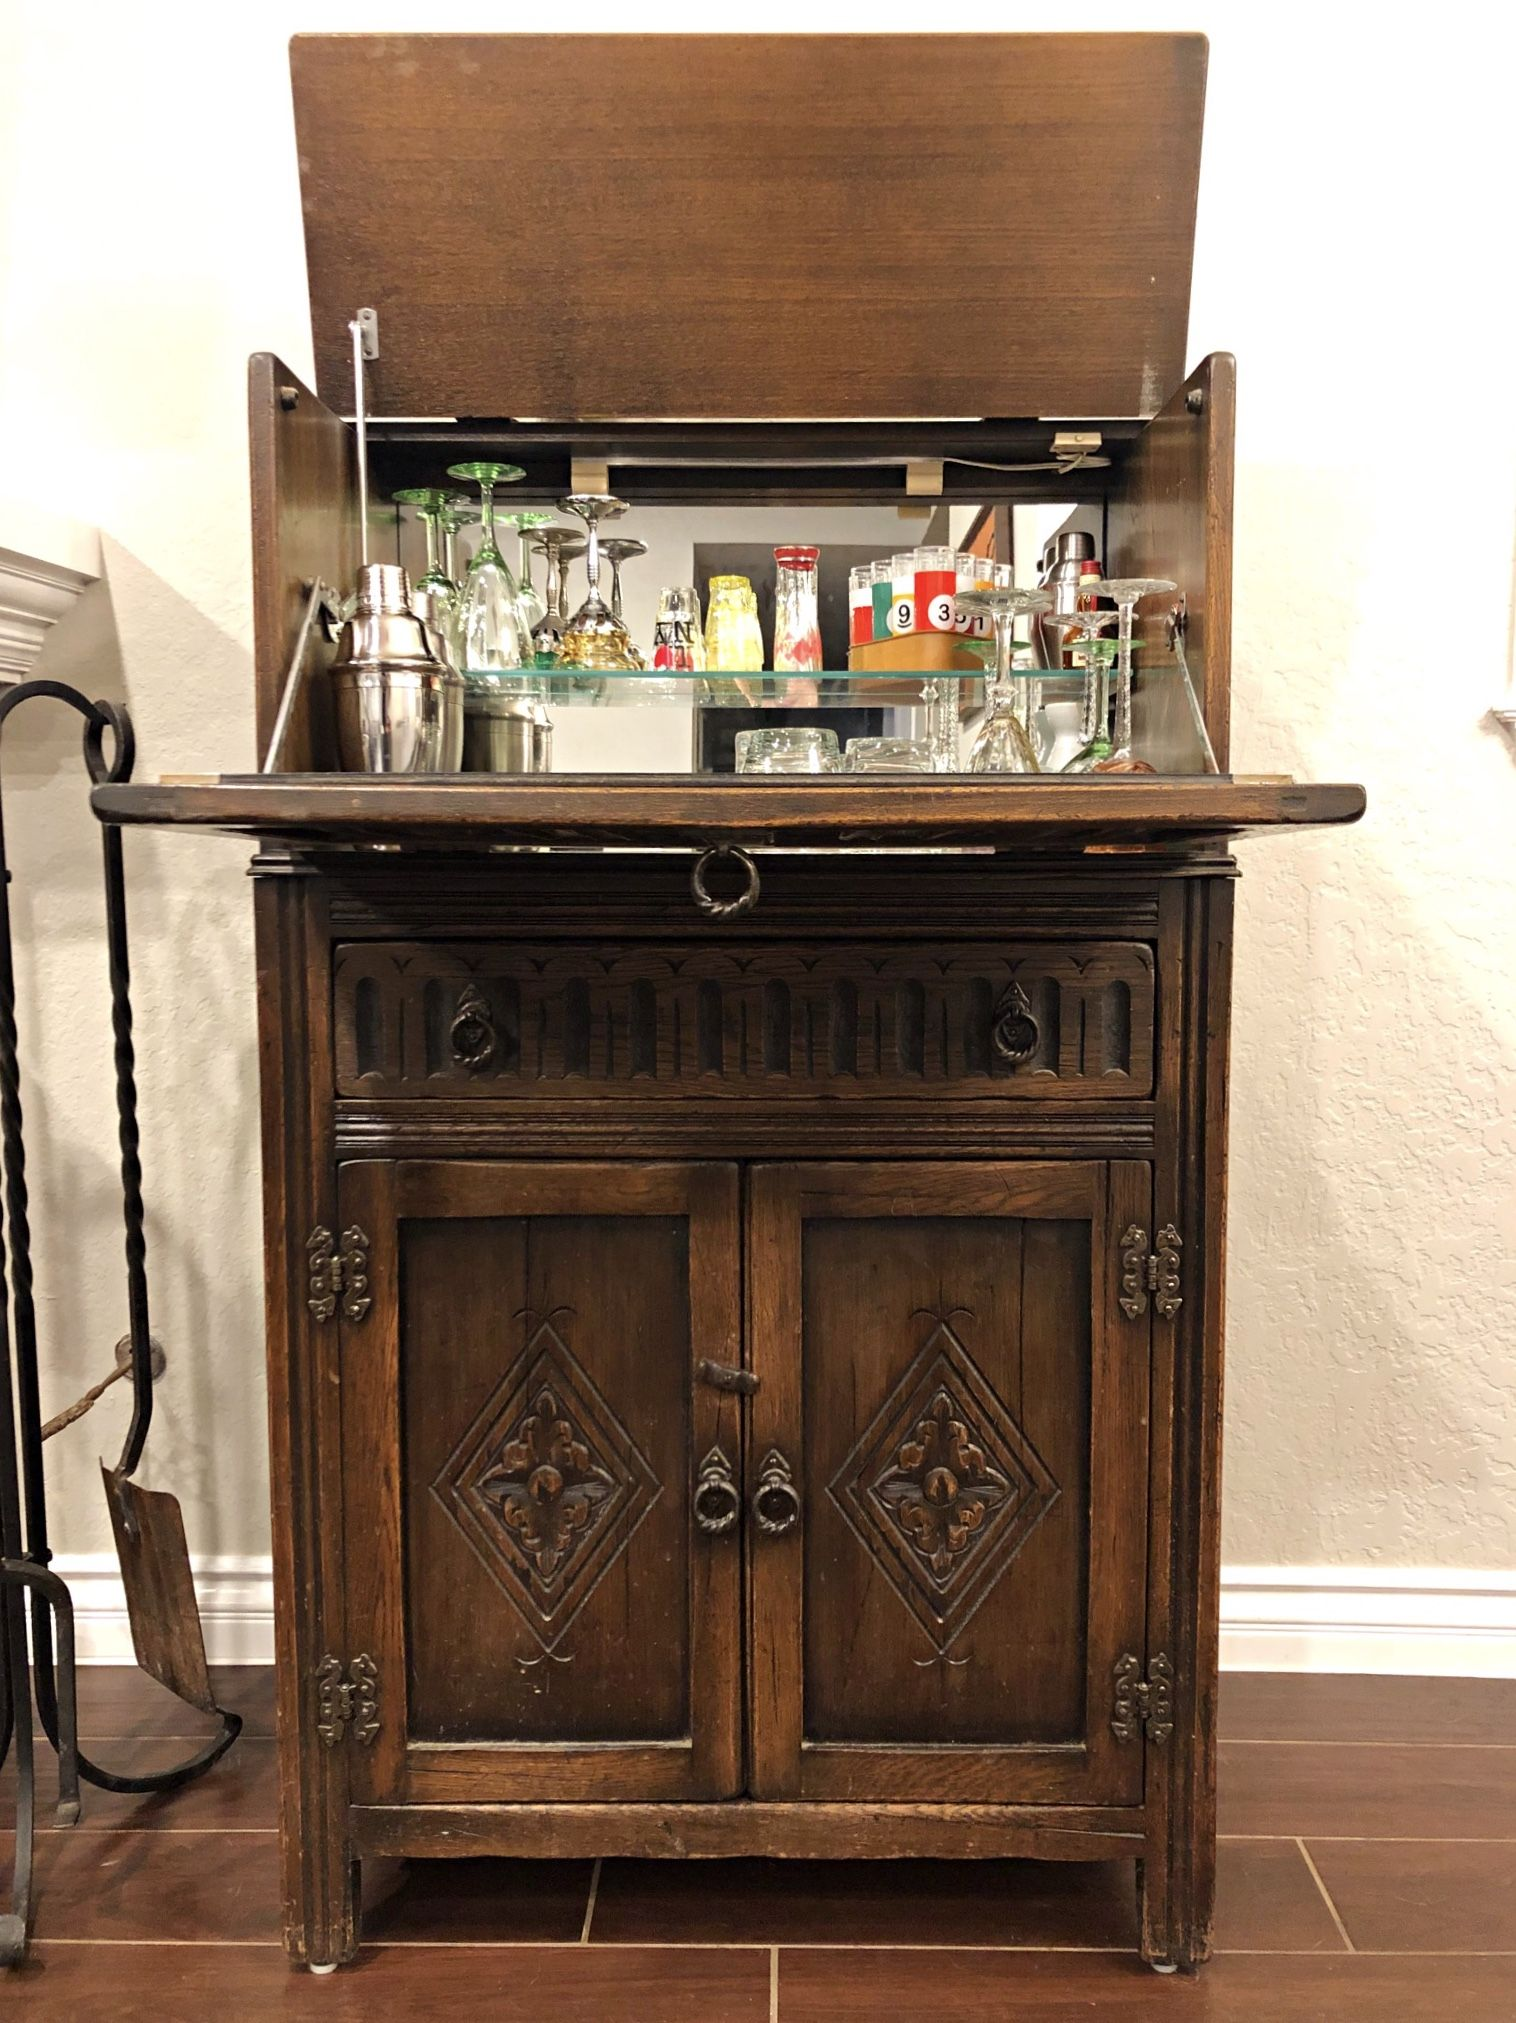 Unique Vintage Bar Cabinet This Is A Piece I Decided To Keep For